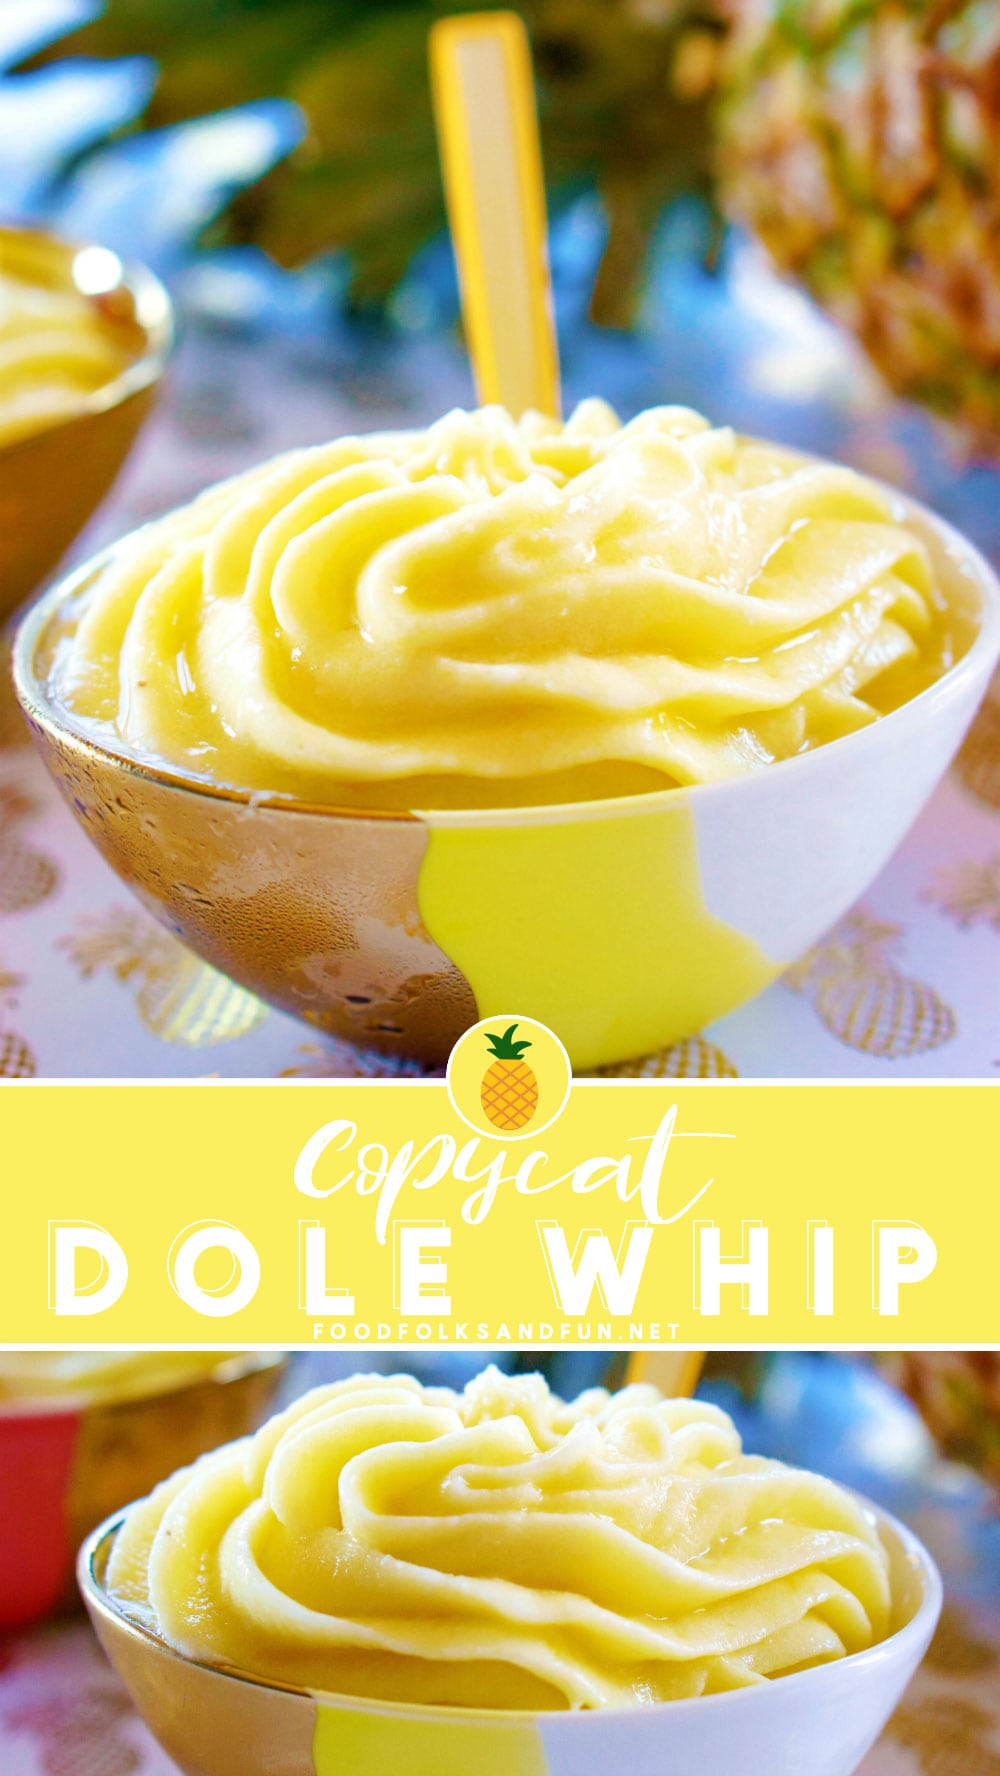 If you love Dole Whip then you'll love my copycat version of the classic Disneyland and Dole Plantation treat! It's so easy to make; all you need are just 3 ingredients and 5 minutes! #pineapple #dolewhip #copycat #copycatrecipe #Disneycopycat #pineapplerecipe #pineappledessert #summer #summerrecipe #summerdessert #foodfolksandfun via @foodfolksandfun